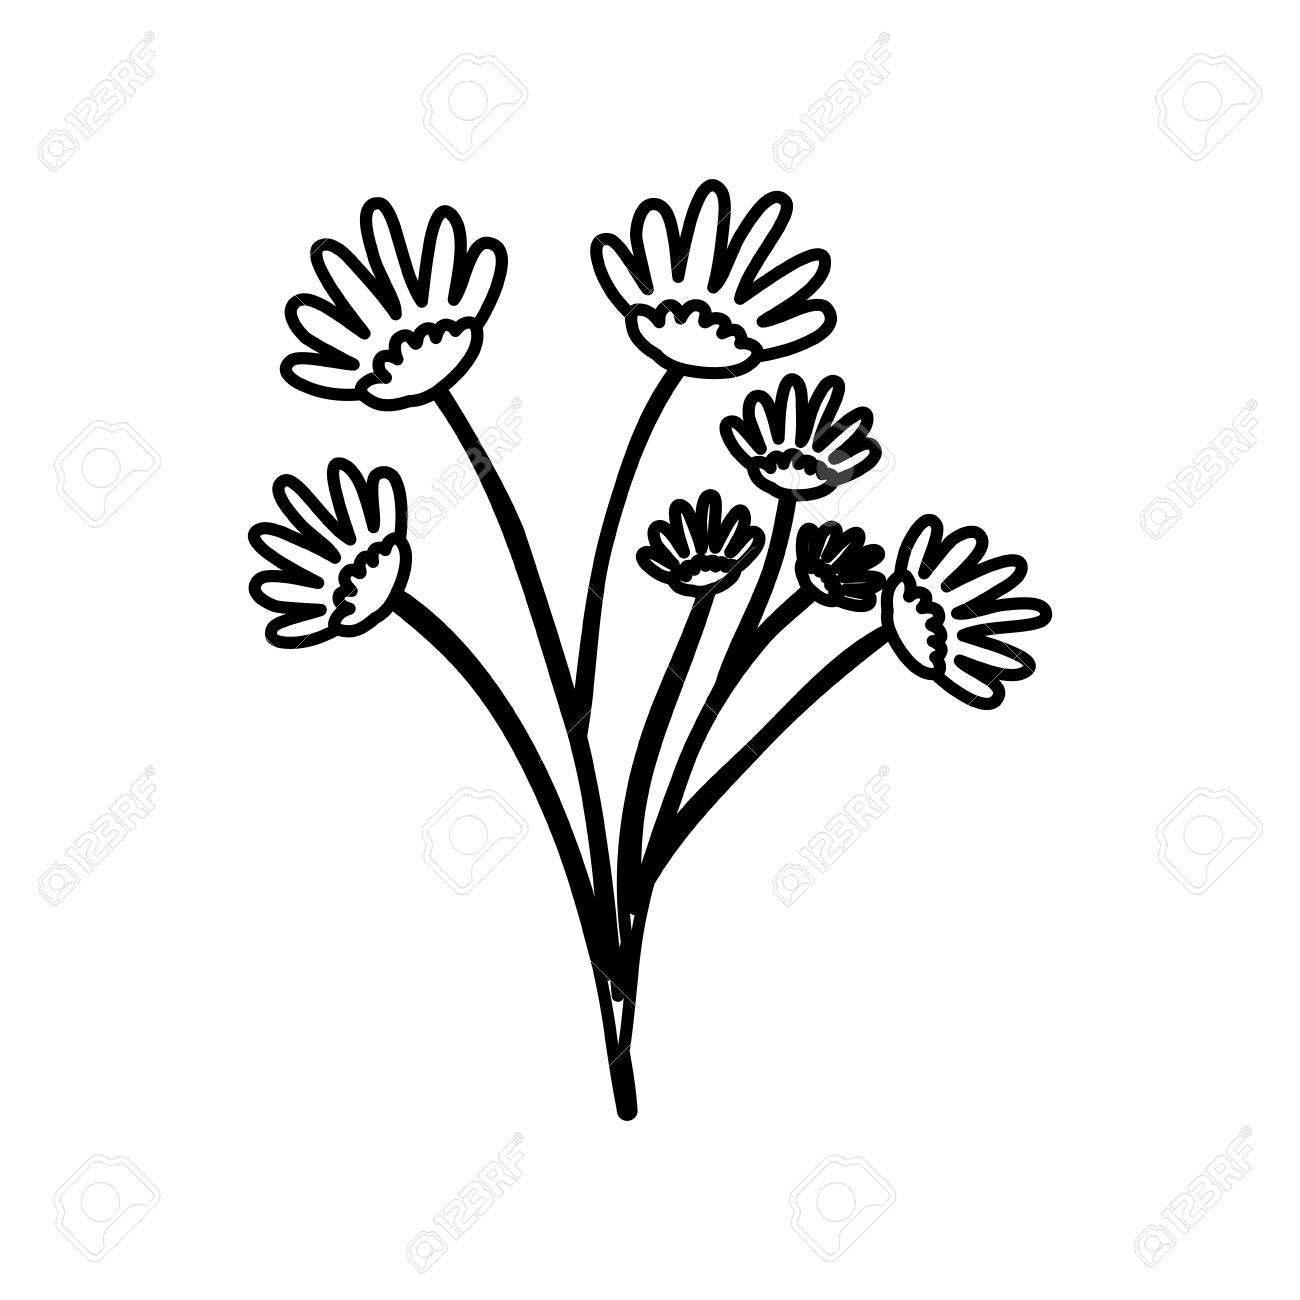 Sketch contour of hand drawing daisy flower bouquet with several sketch contour of hand drawing daisy flower bouquet with several ramifications vector illustration stock vector izmirmasajfo